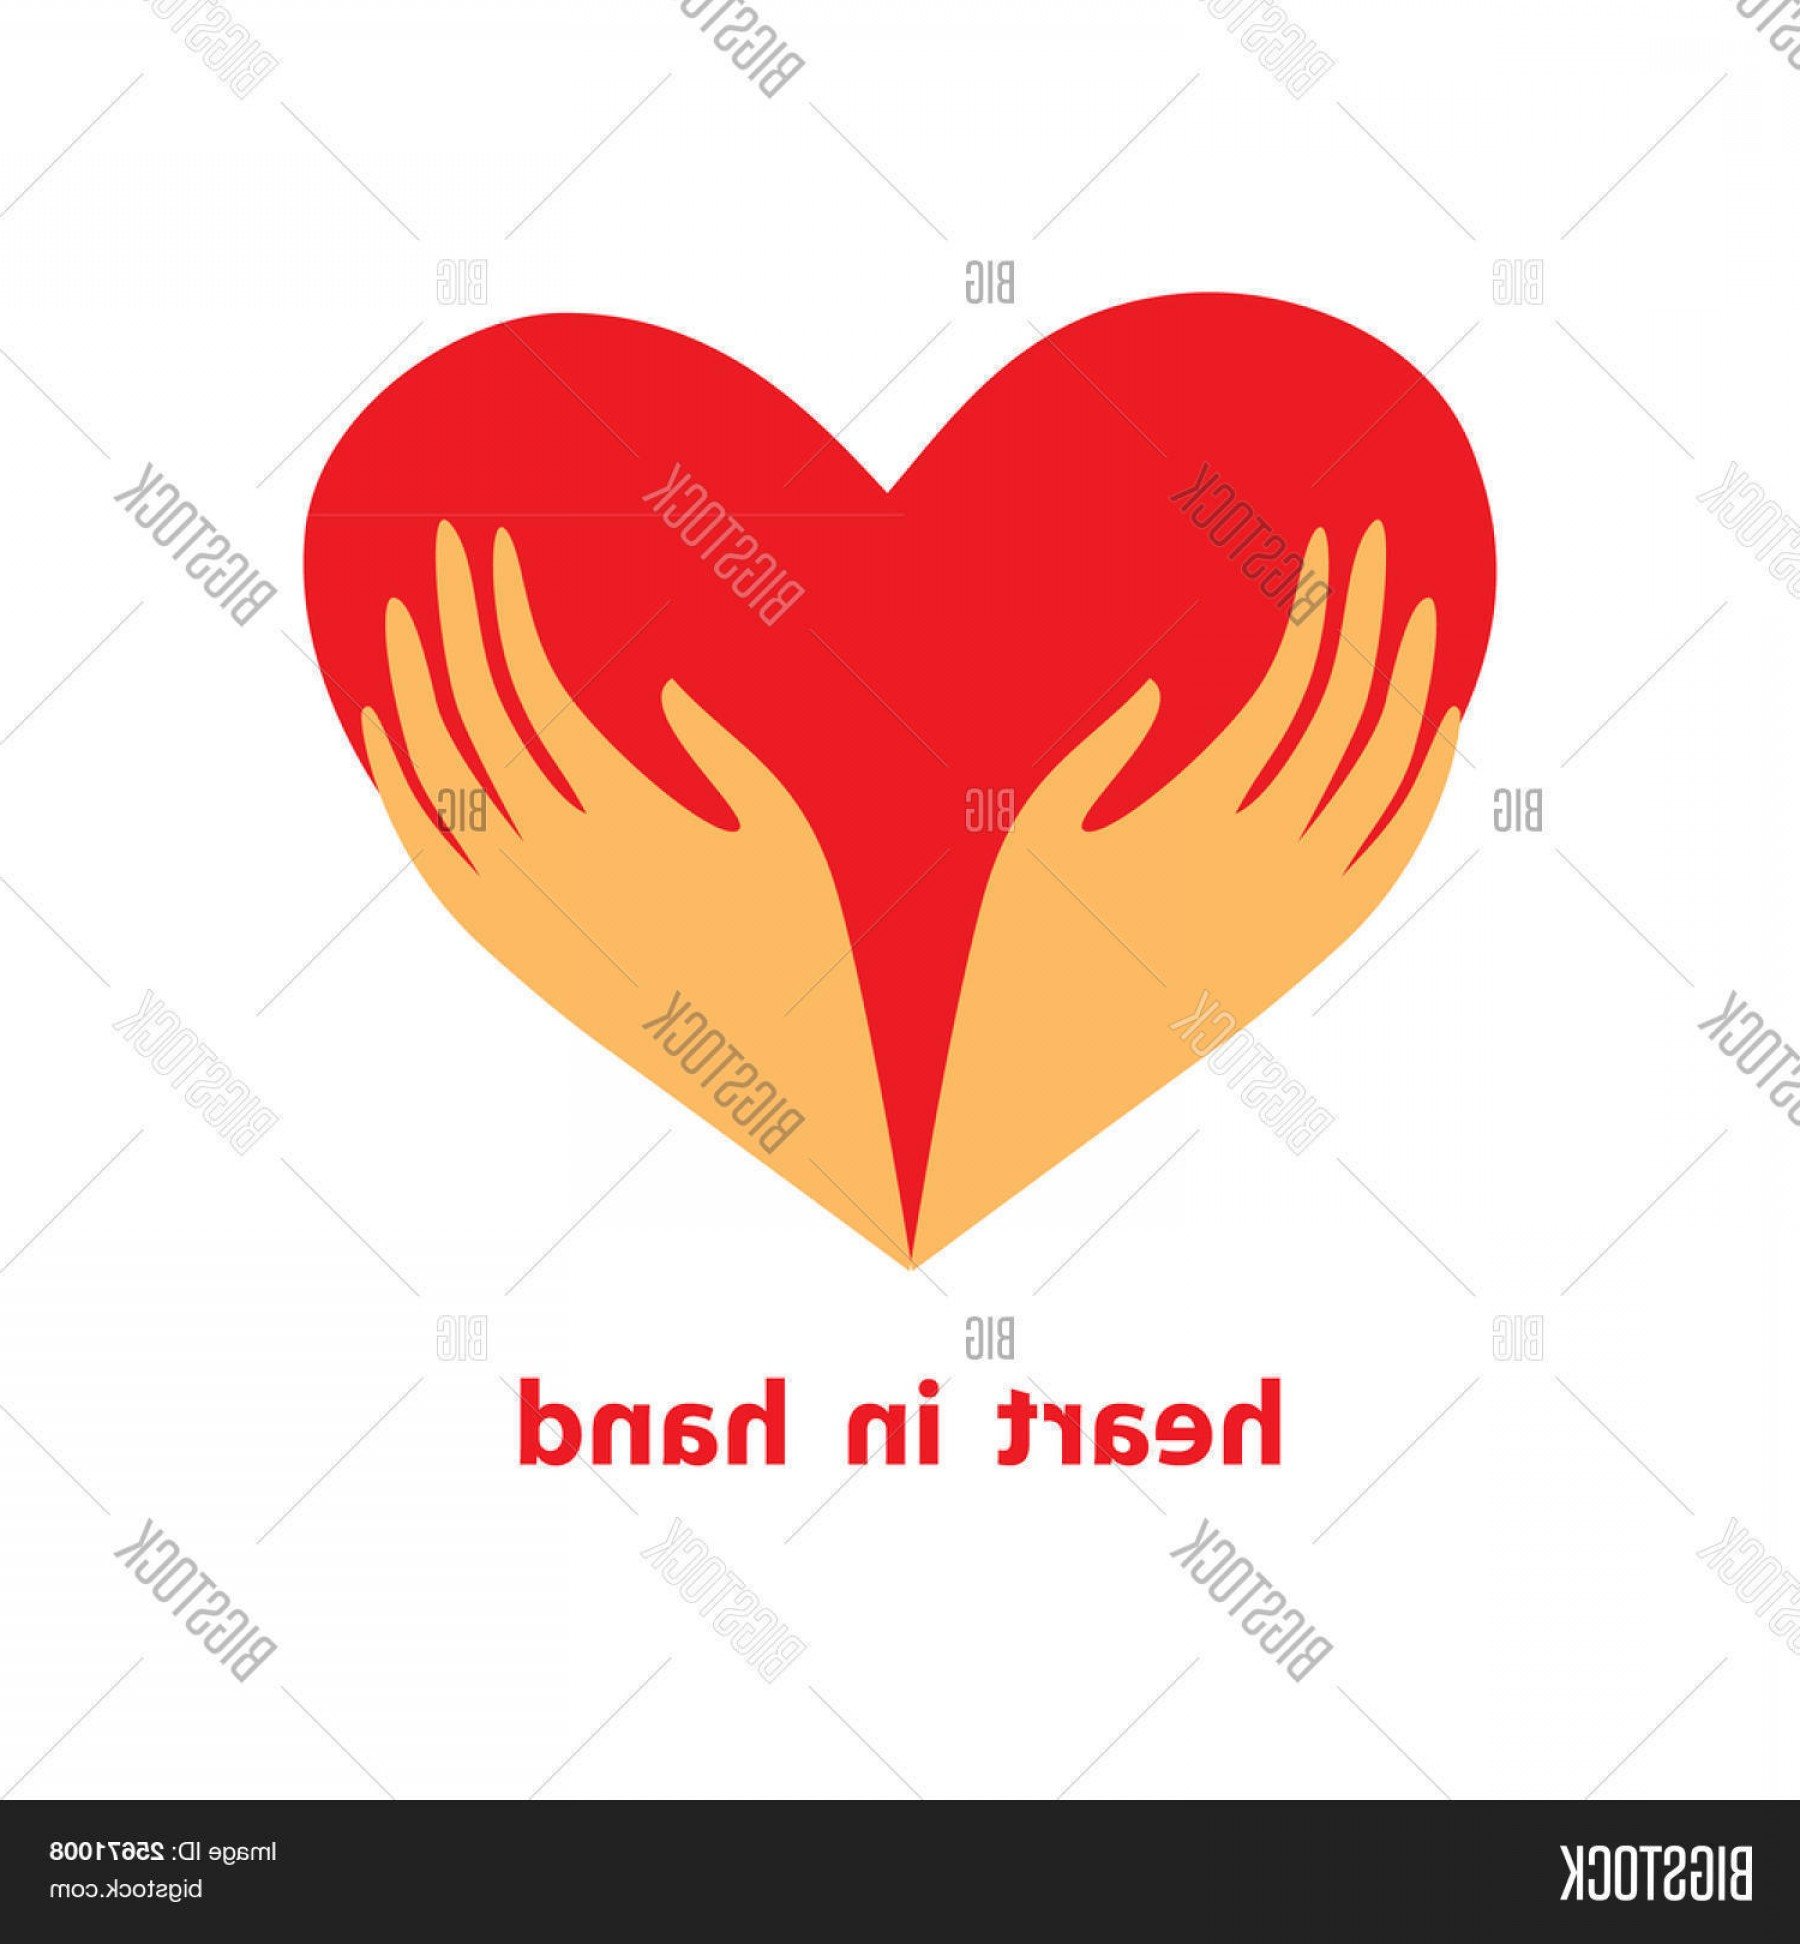 Heart In Hand Vector Clip Art: Stock Vector Template Of The Sign Heart In His Hands Symbol Lovec Carec Supportc Donatec Loyalty And Help Vector